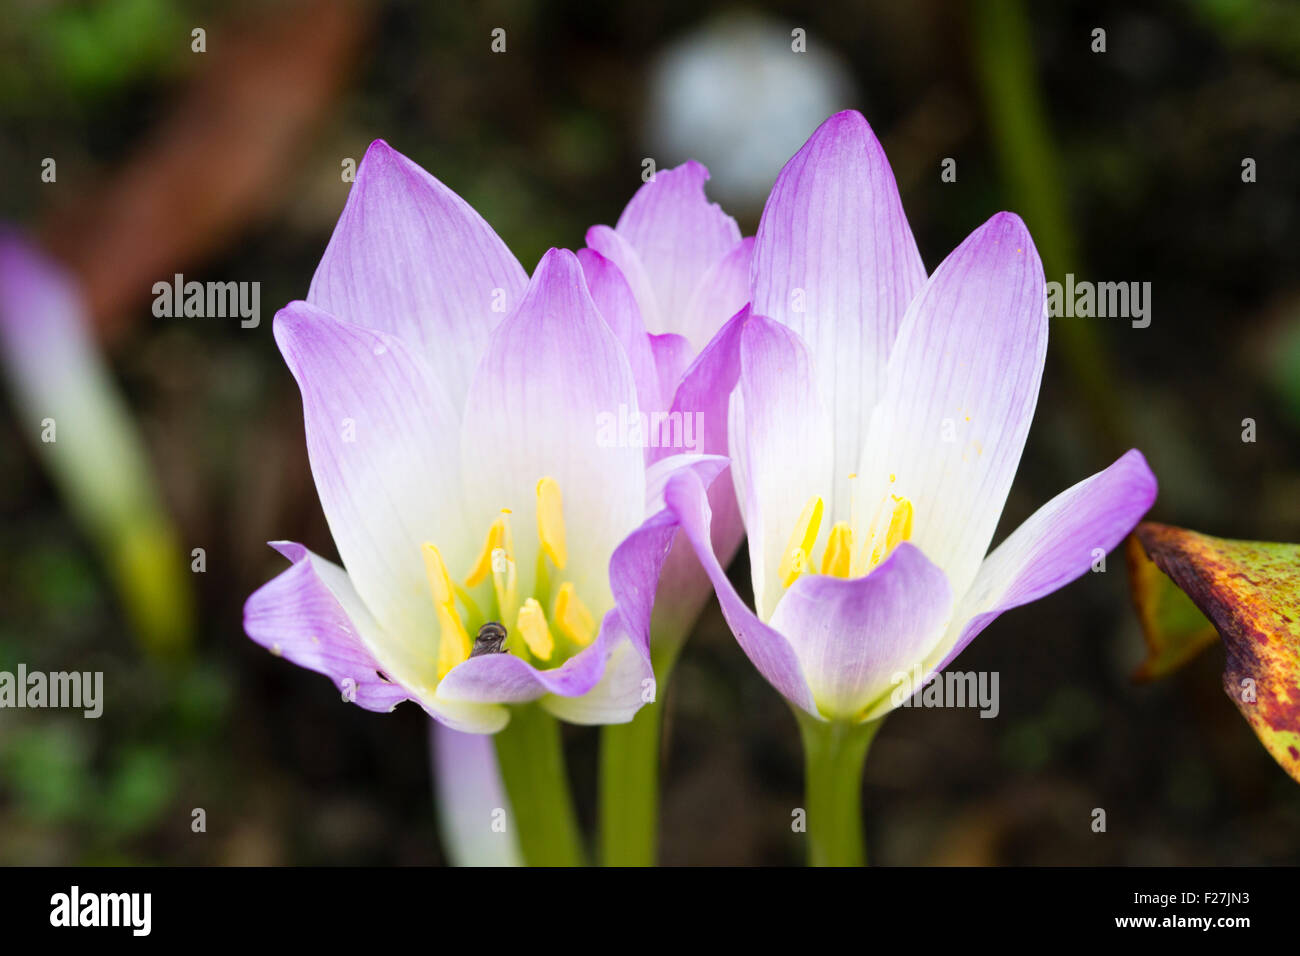 Early autumn flowers of the meadow saffron, Colchicum speciosum 'Kiss me Quick' - Stock Image